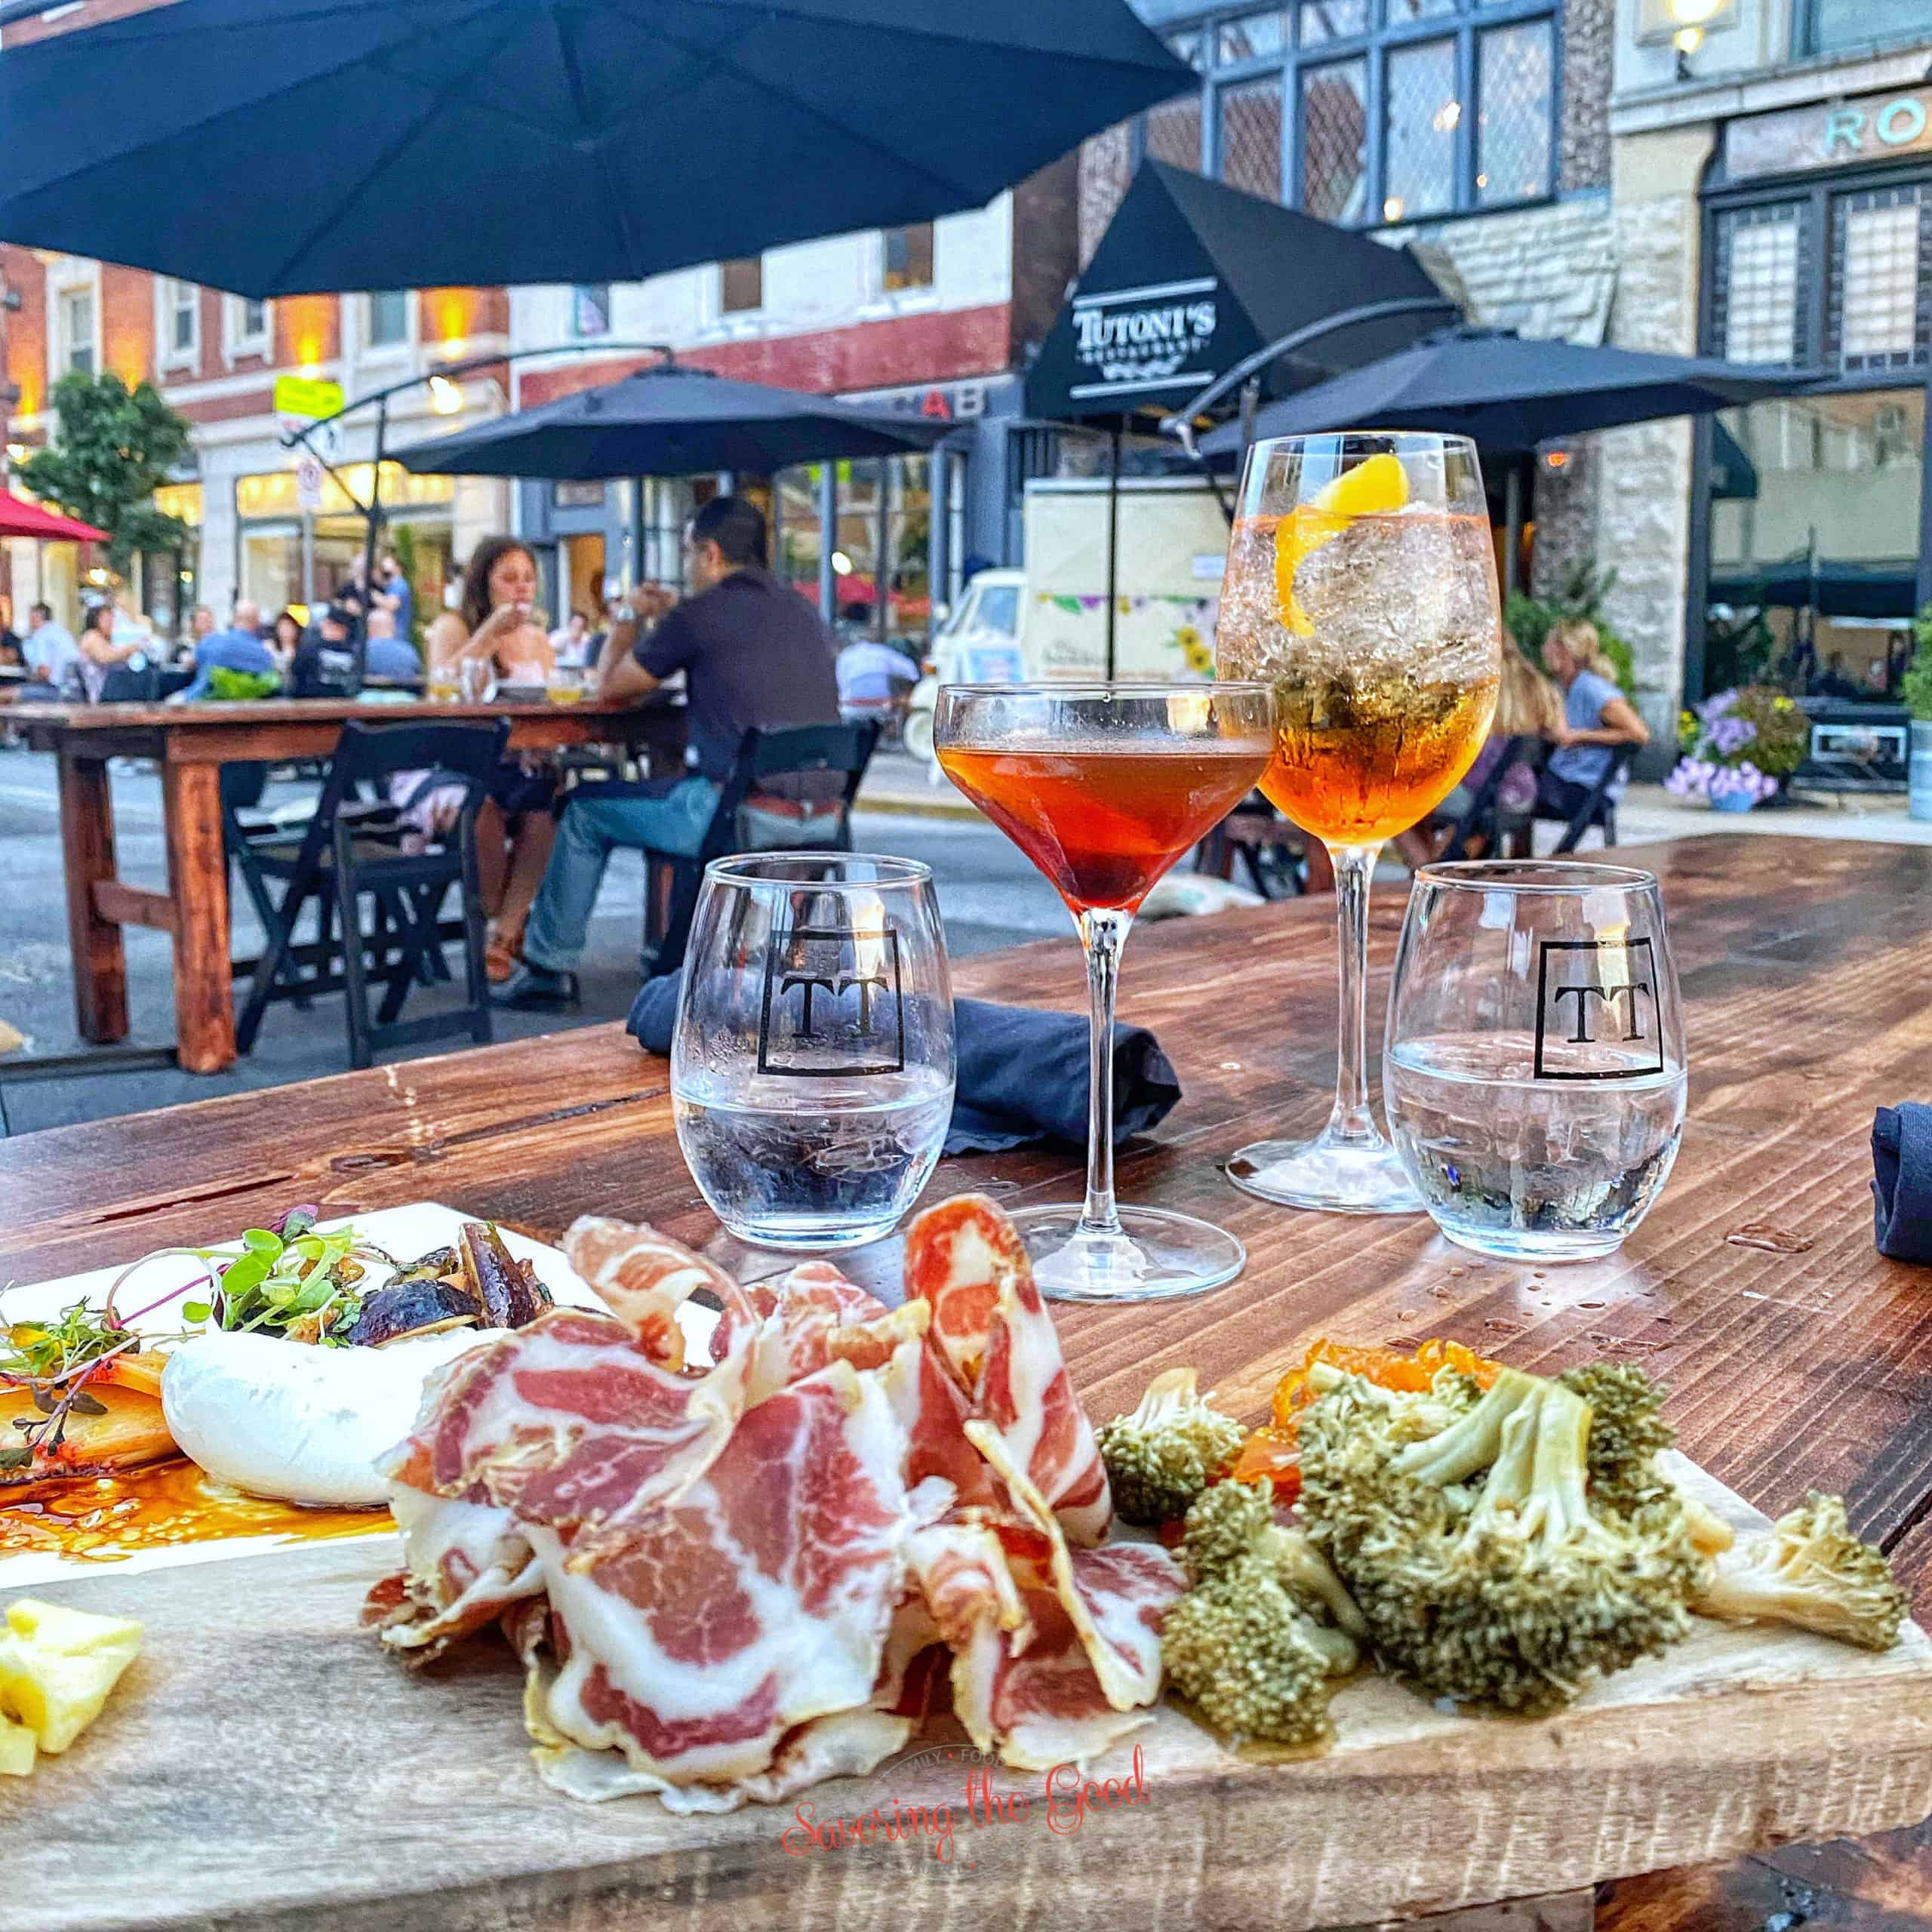 charcuterie board at Tutonis in york pa outdoor seating